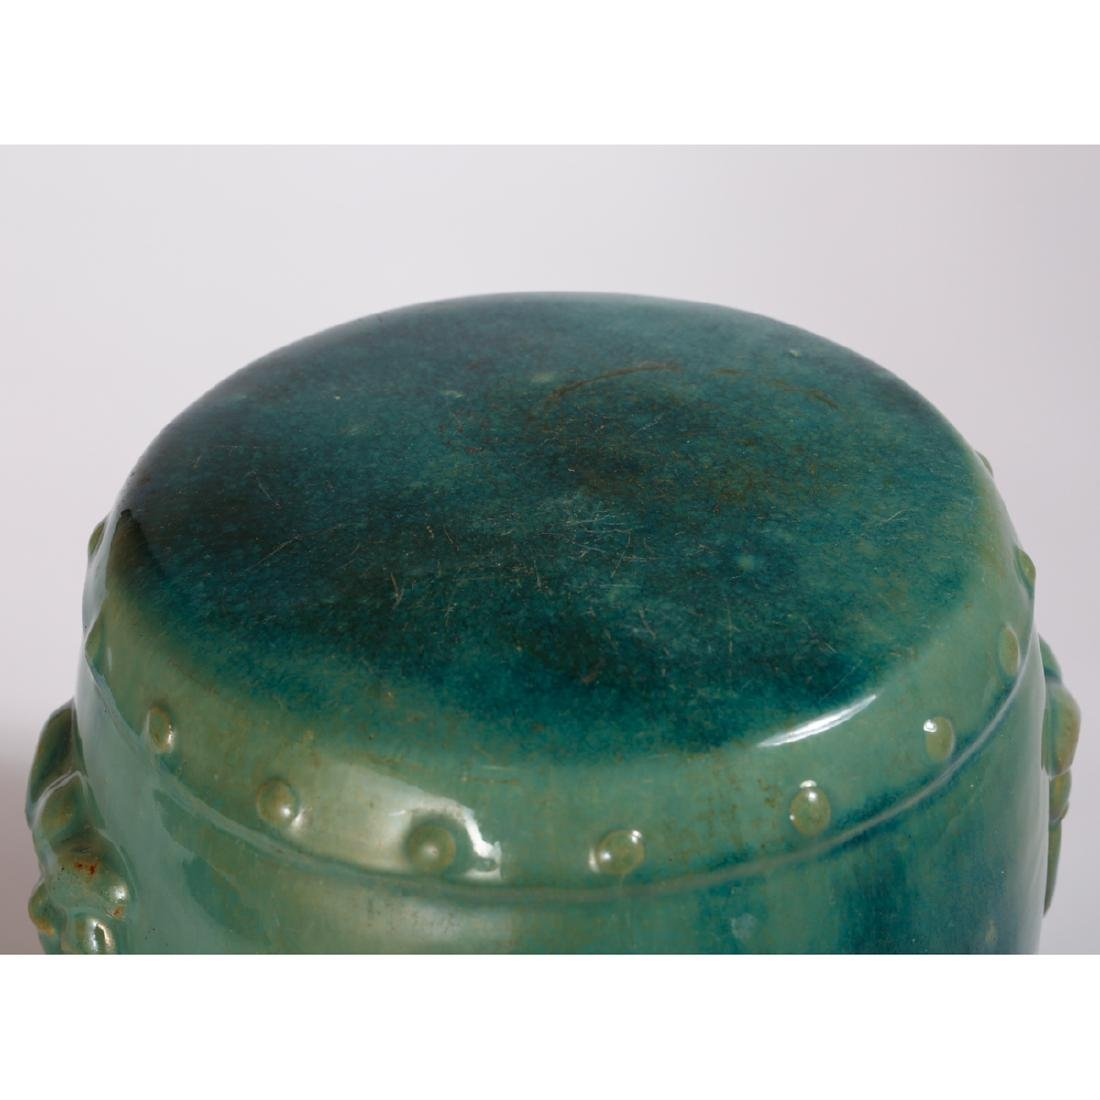 CHINESE TURQUOISE GLAZED PORCELAIN STOOL - 4